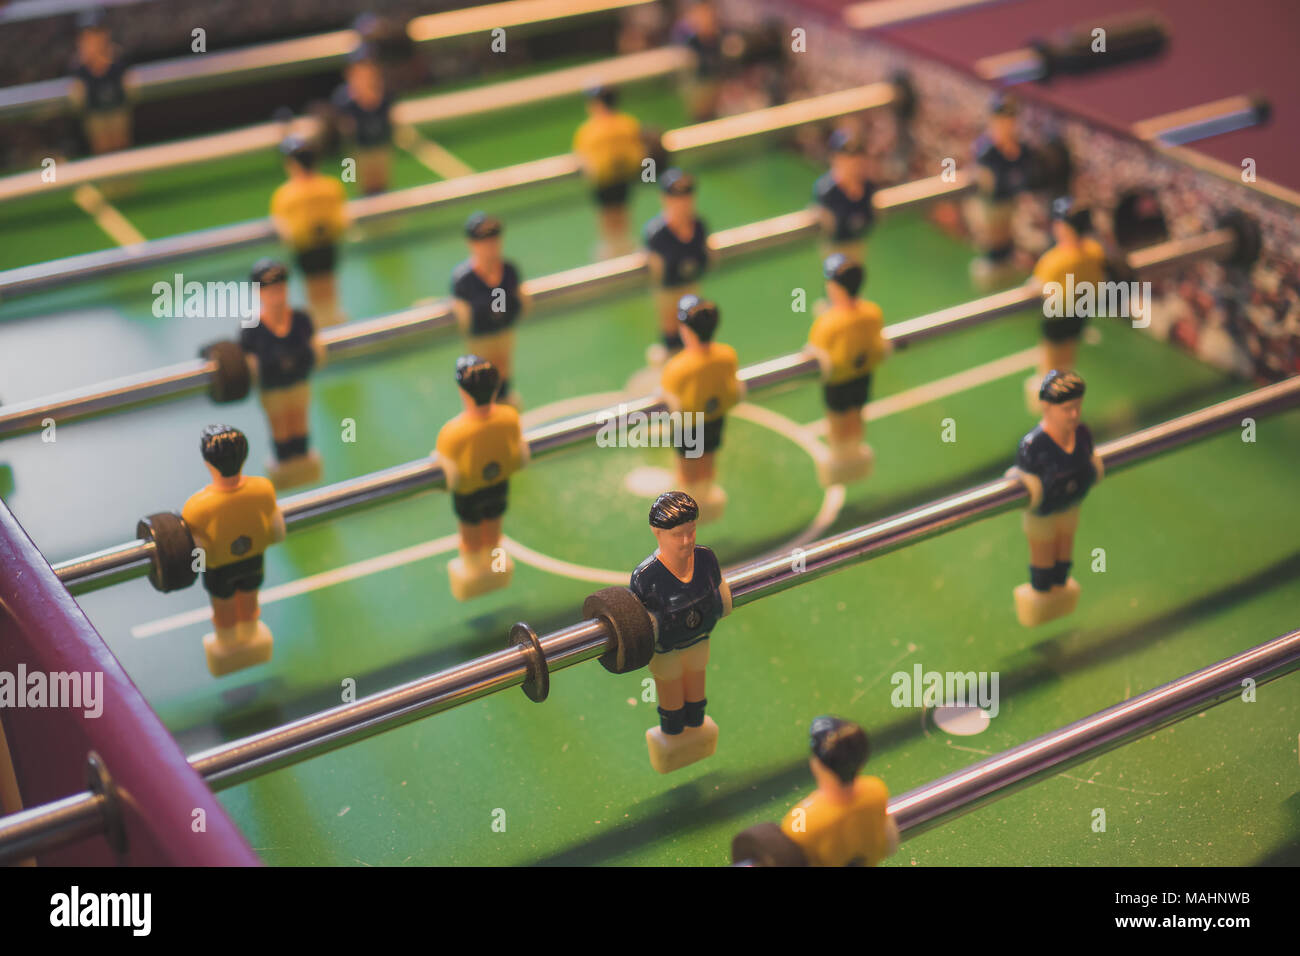 Table football game with yellow and blue players. - Stock Image